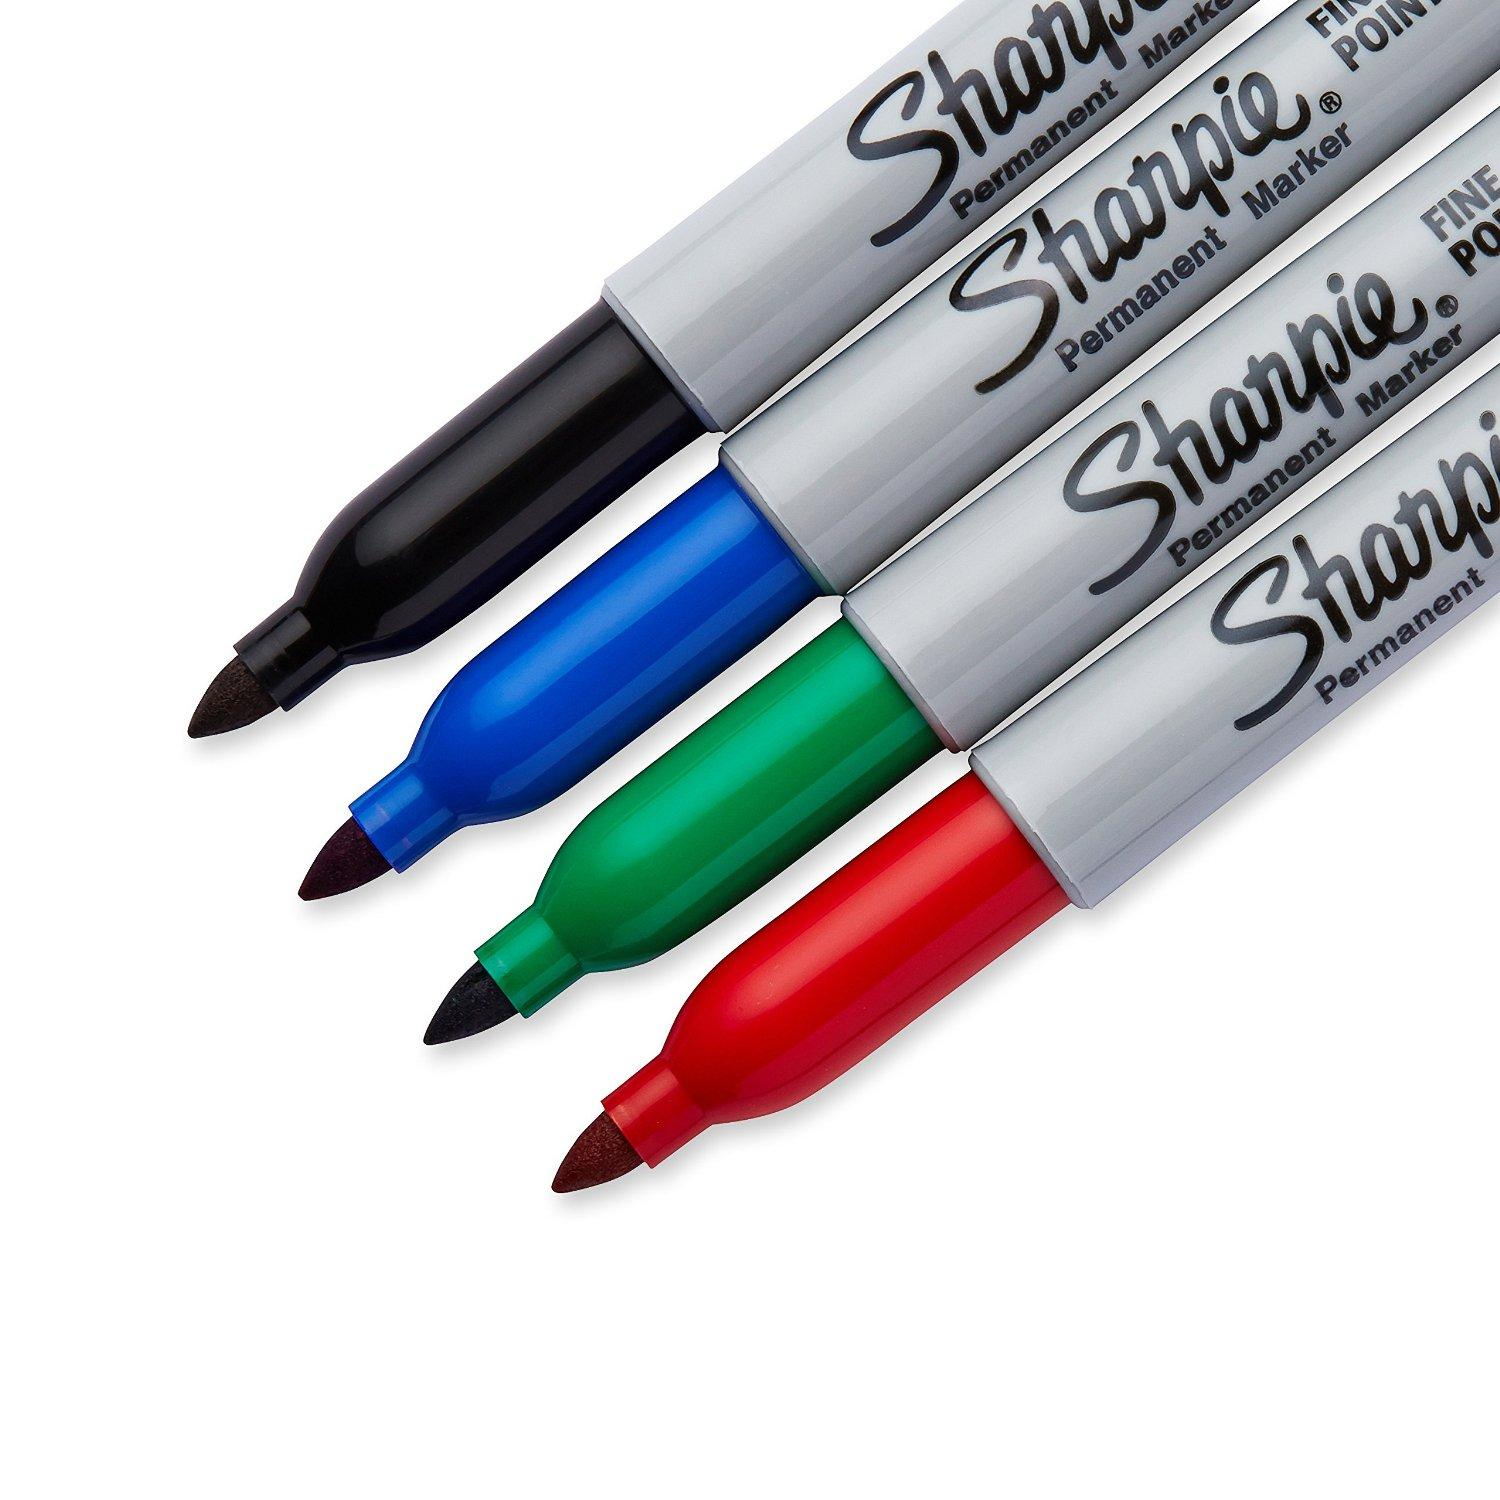 Sharpie 30074 Fine Point Permanent Marker, Assorted Colors, 4-Pack